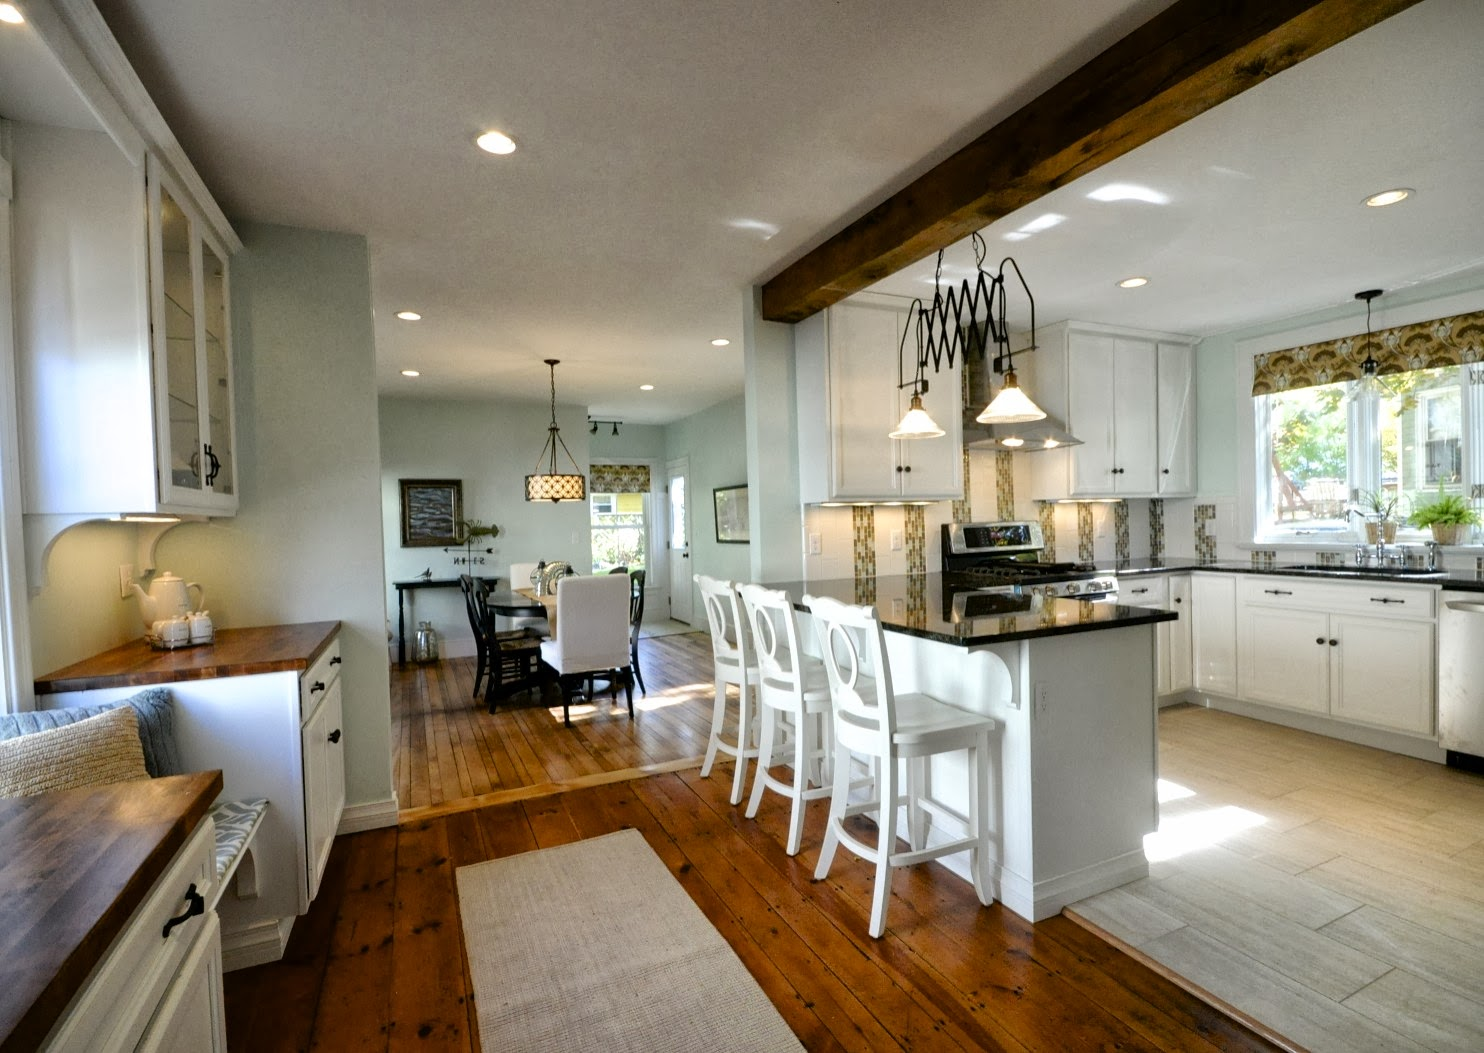 creating open kitchen dining room construction haven home home kitchen designs luxurious traditional kitchen ideas